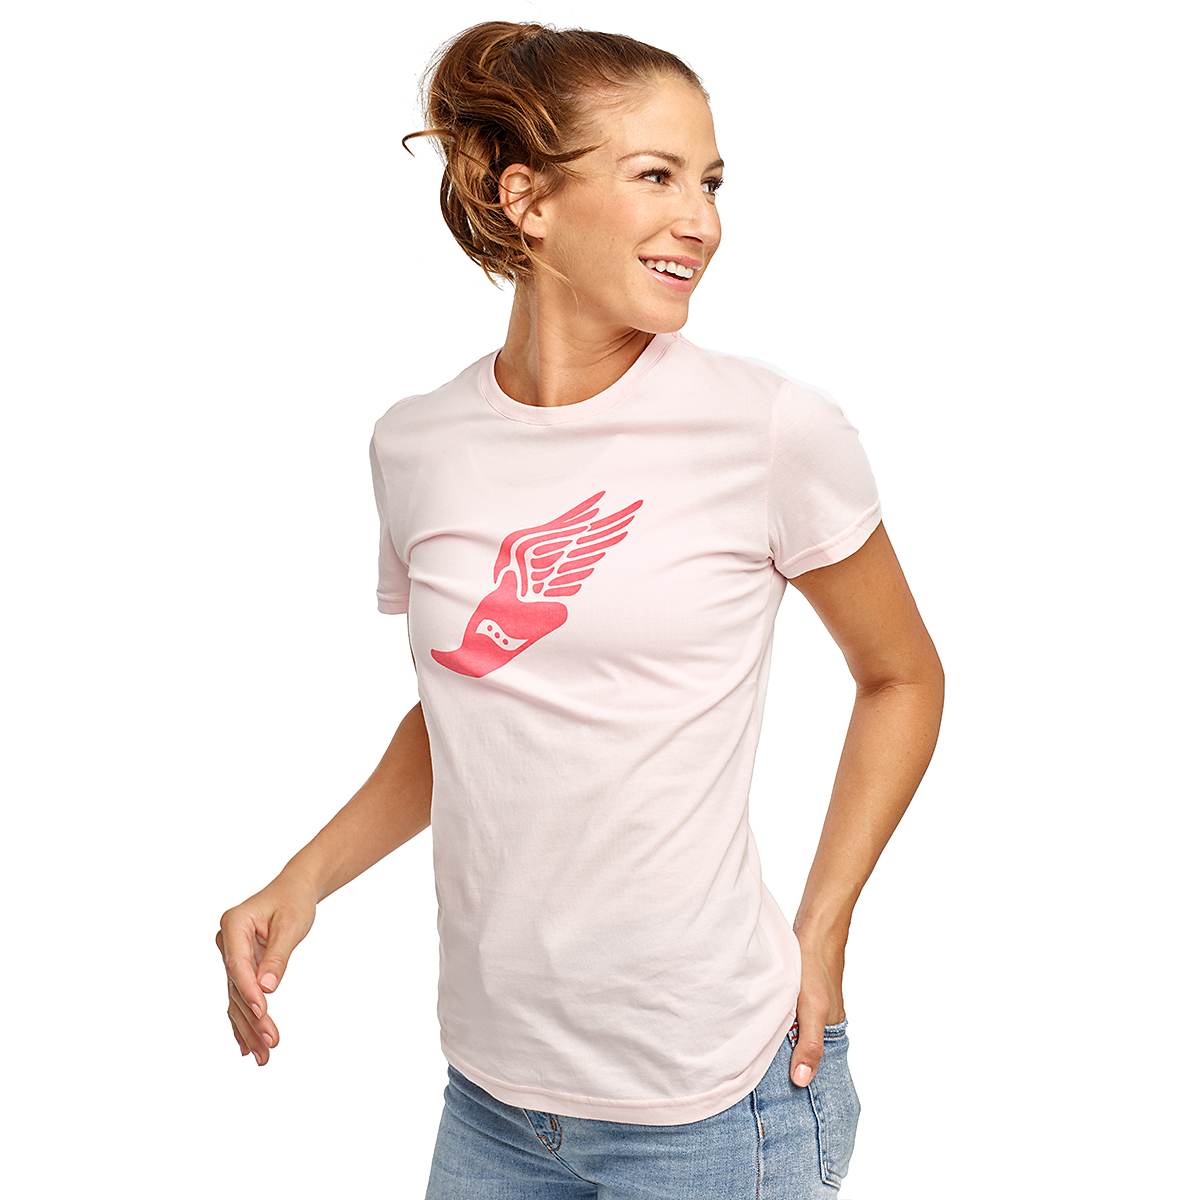 Women's Saucony Rested Short Sleeve - Color: Barely Pink - Size: XXS, Barely Pink, large, image 1